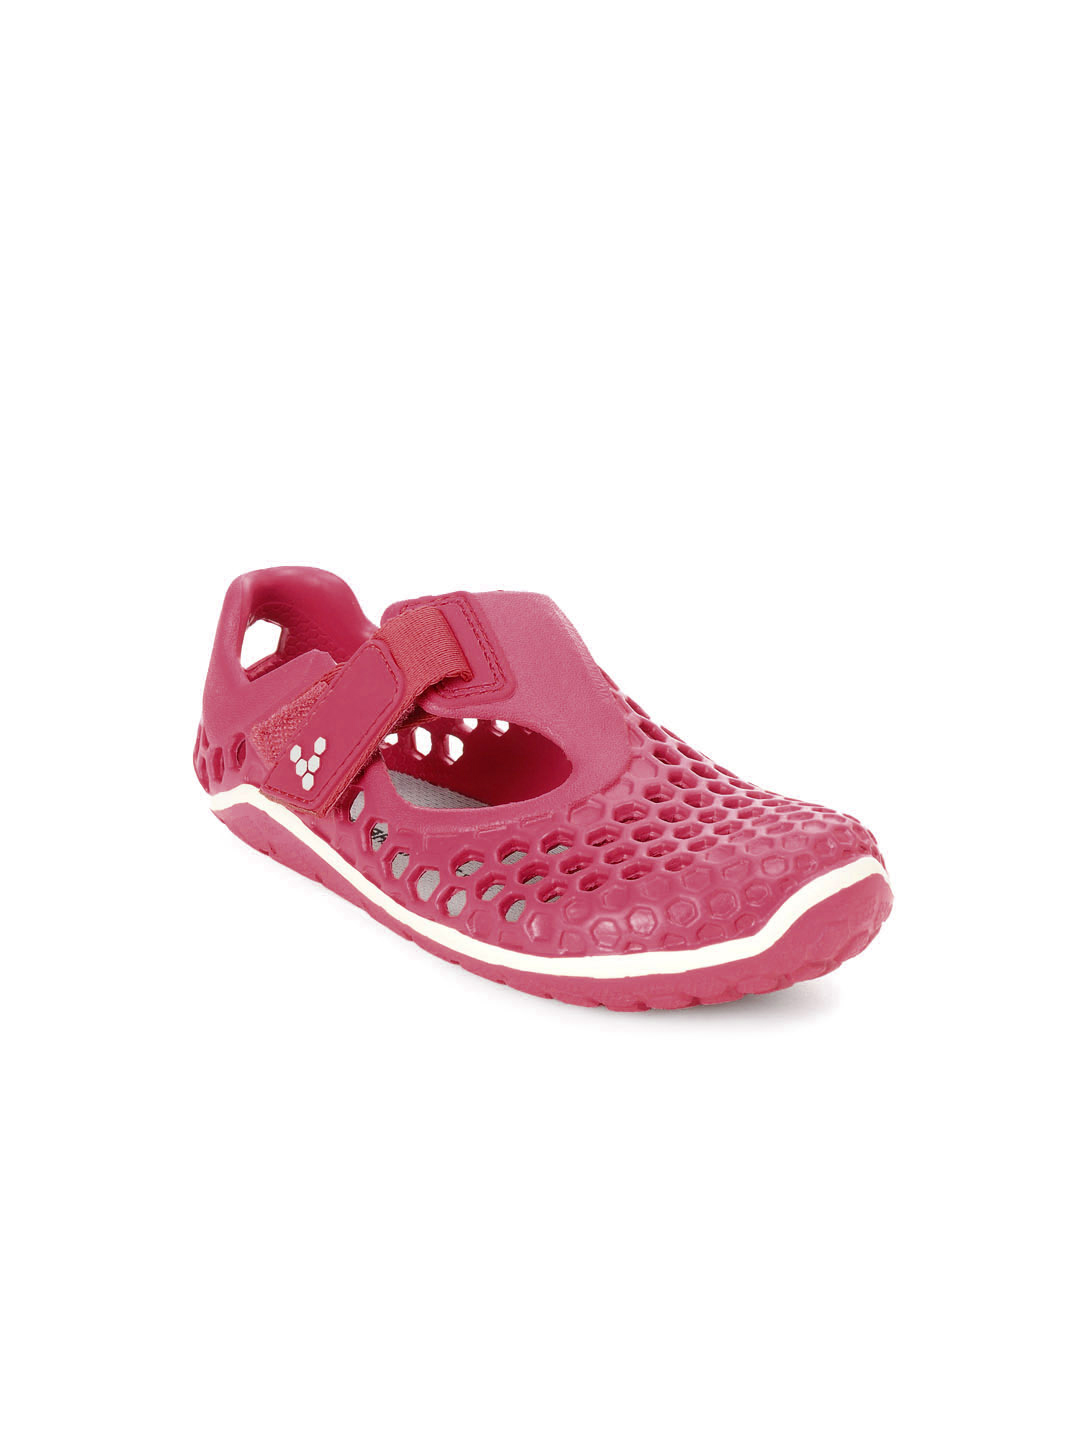 VIVOBAREFOOT Girls Ultra Pink Shoes